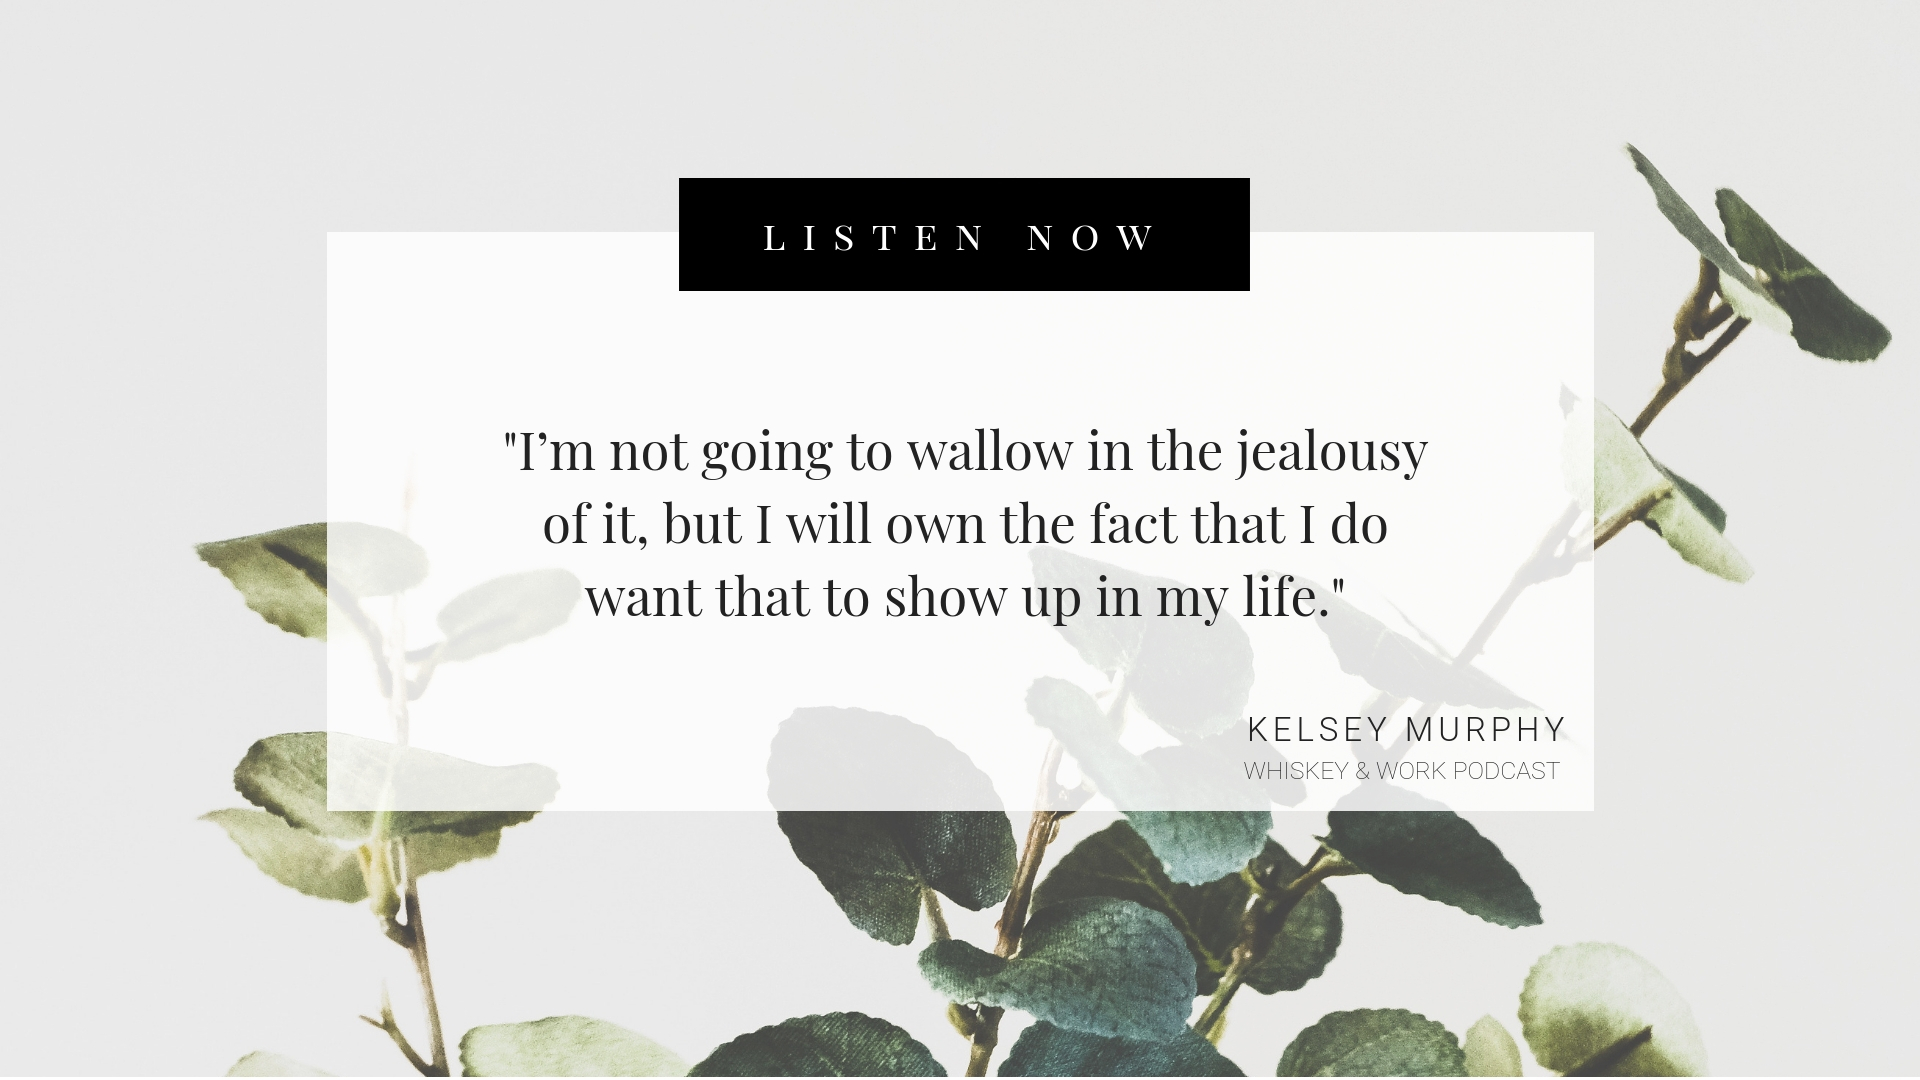 Jealousy Whiskey and Work Podcast with Kelsey Murphy